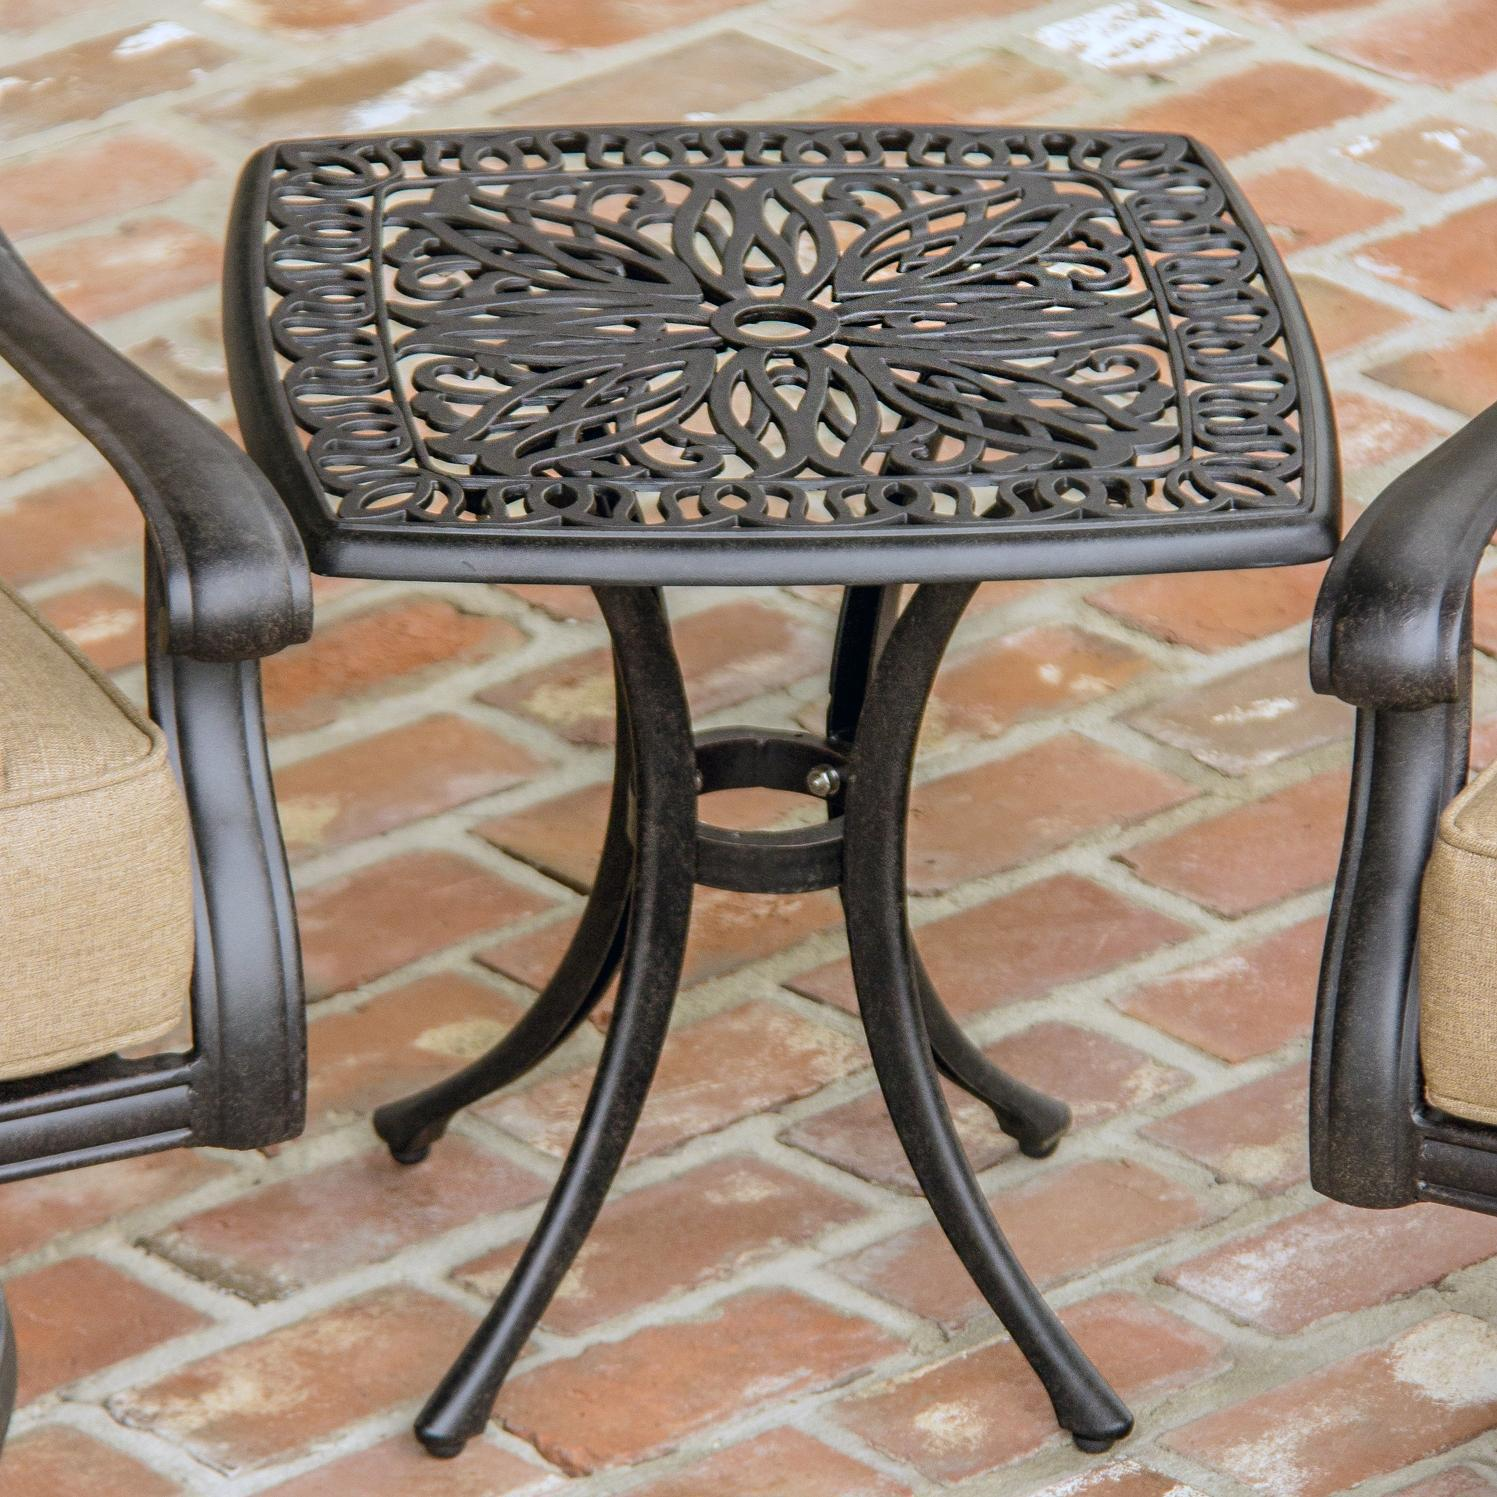 garden folding furniture aluminium outdoor bar setting patio table and chairs cast aluminum deck end tables full size entrance ikea black brown side hidden storage life stages dog